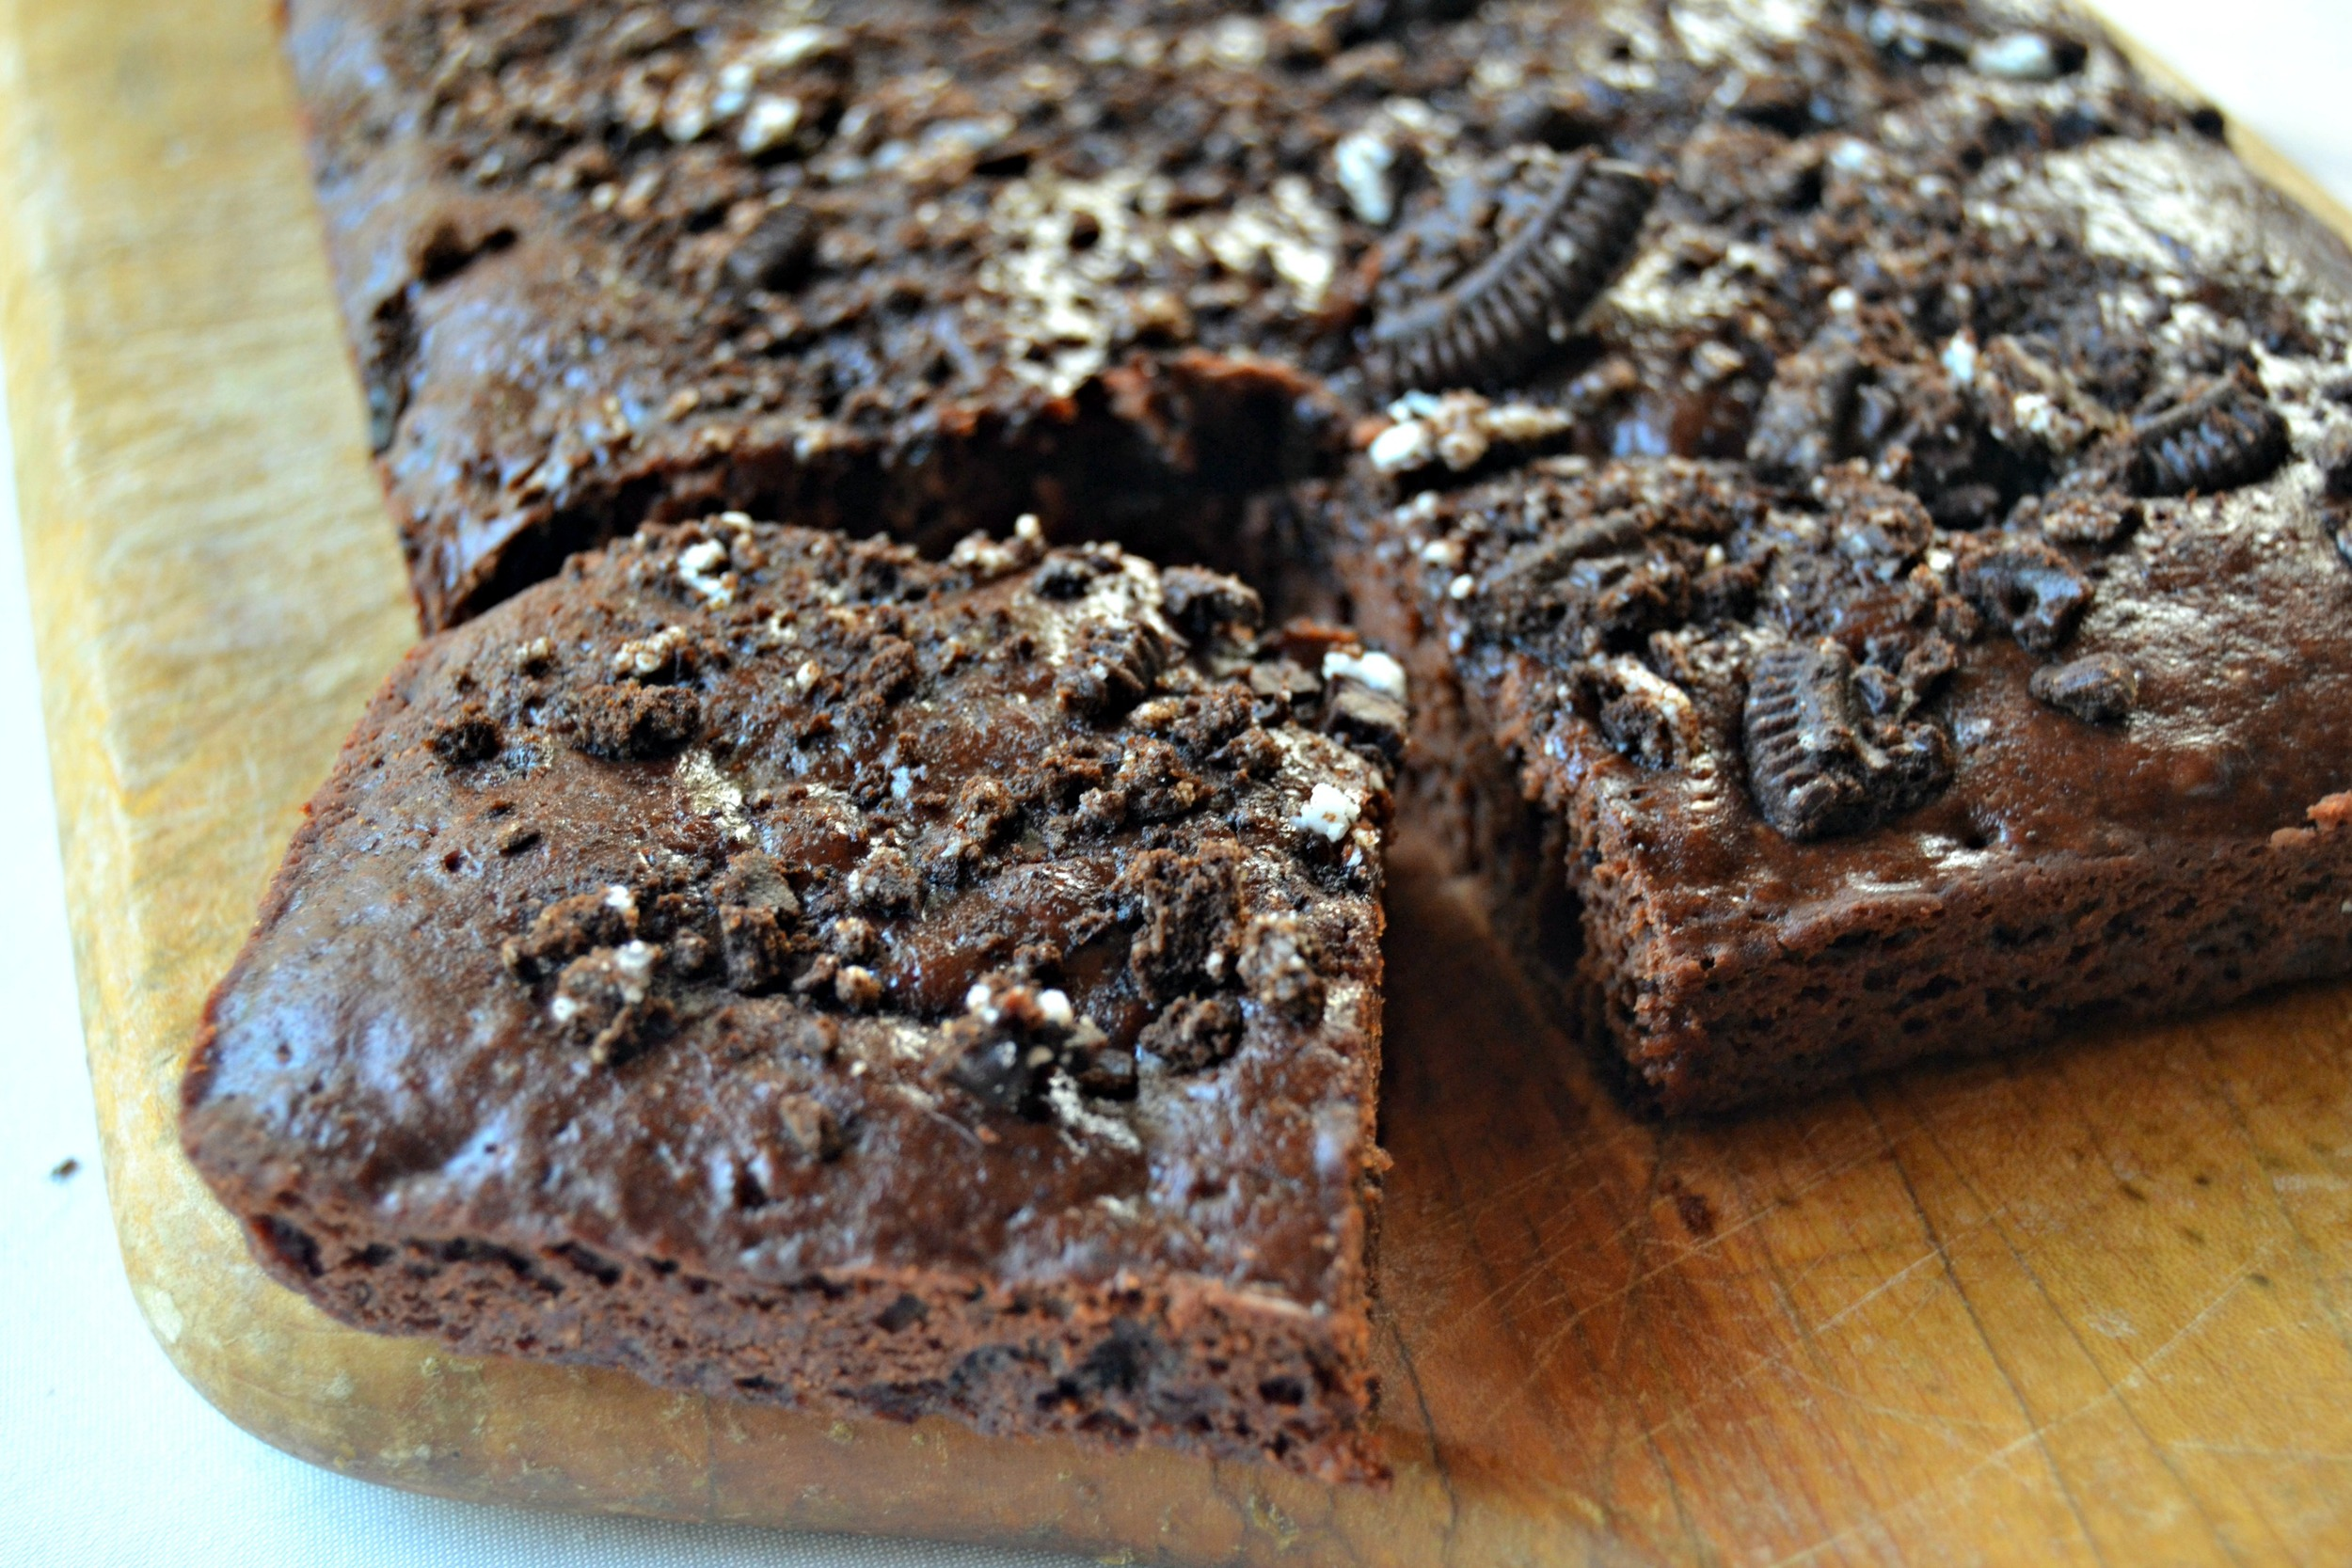 These brownies are ultra fudgy and chocolaty, thanks to the Oreo cookie chunks! They'll stay fresh for up to 3 days if stored in an airtight container.